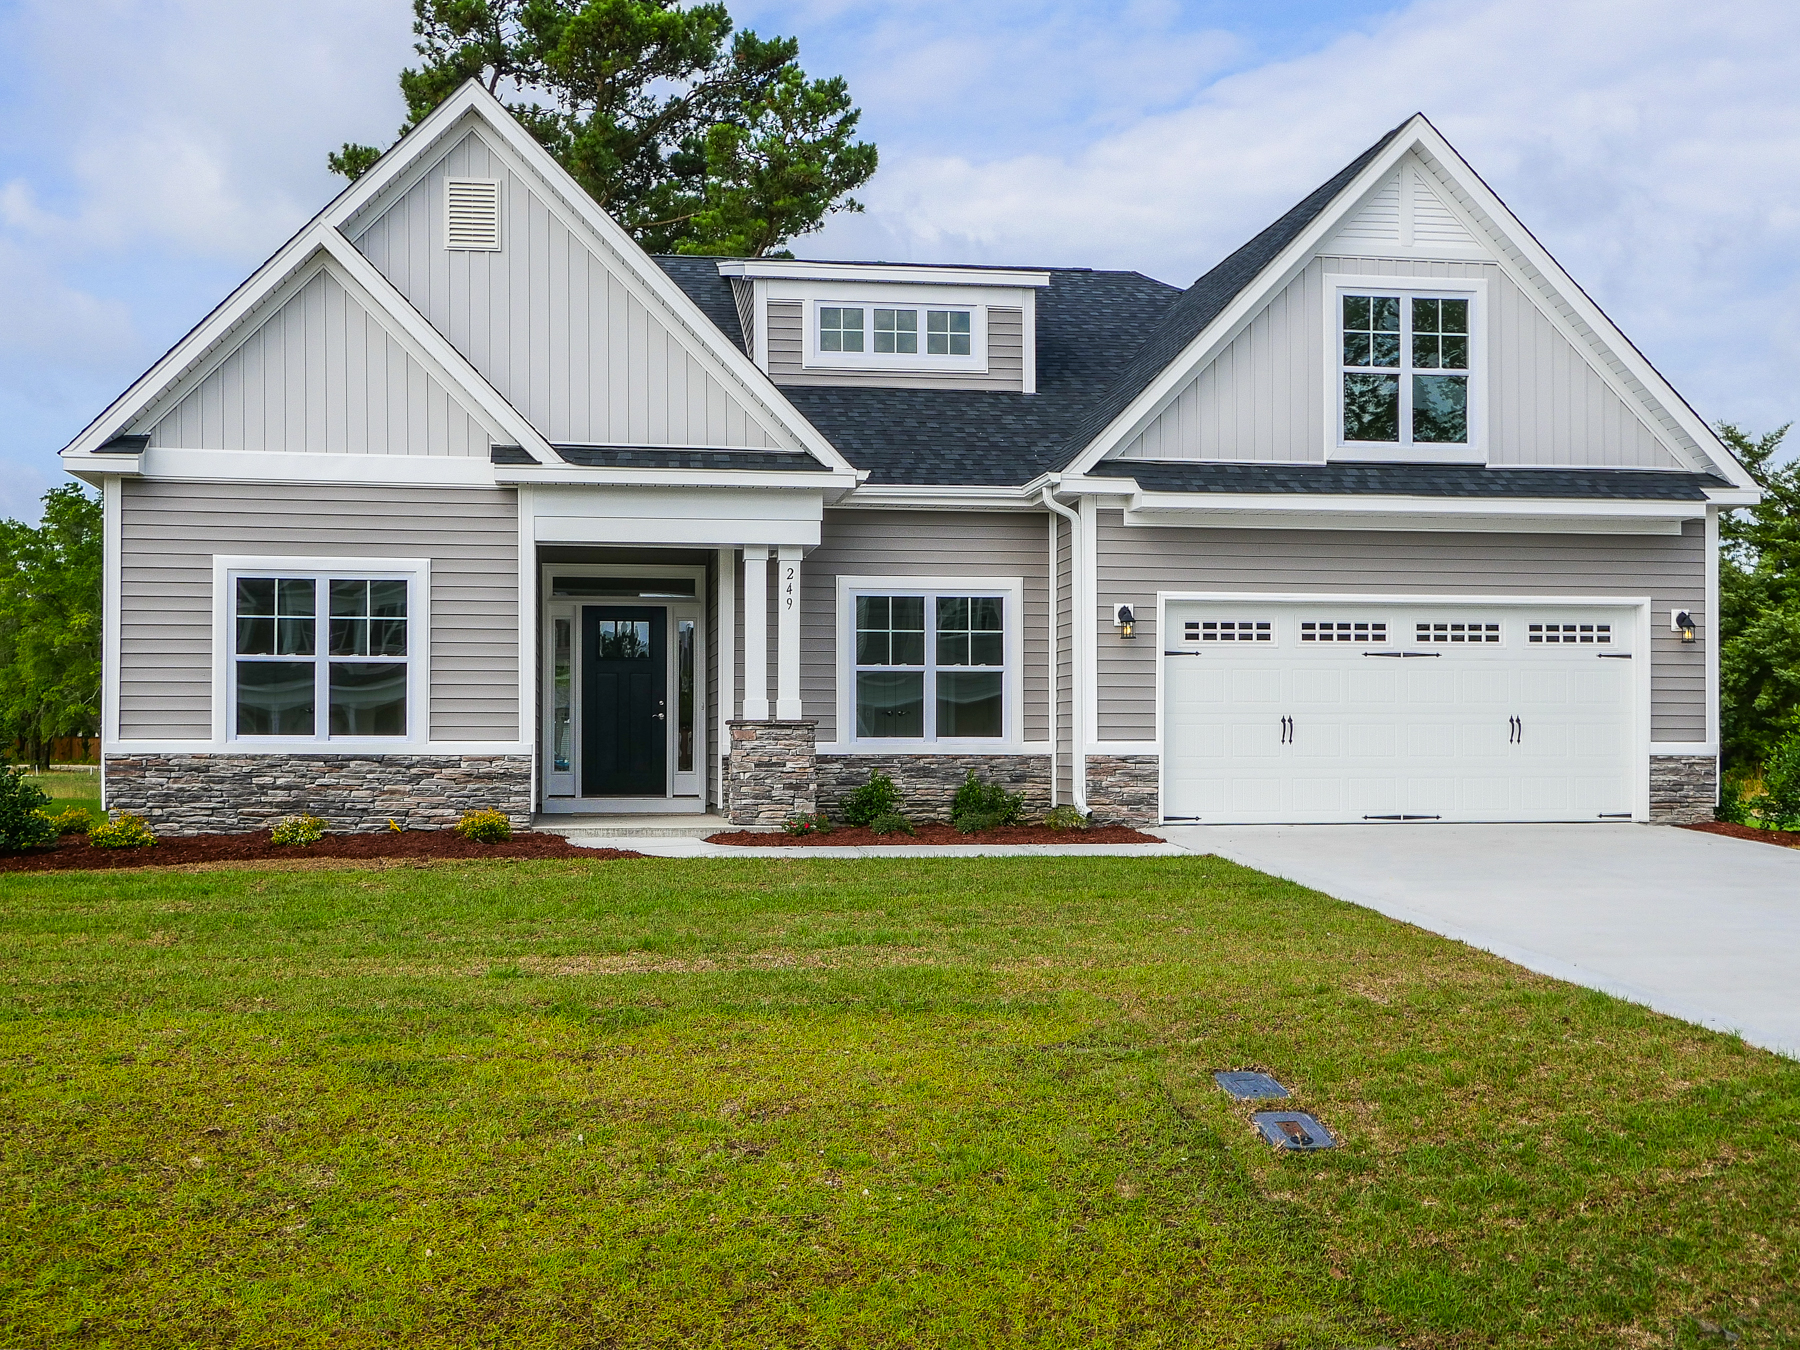 249 W. Craftsman Way - The Cape Fear